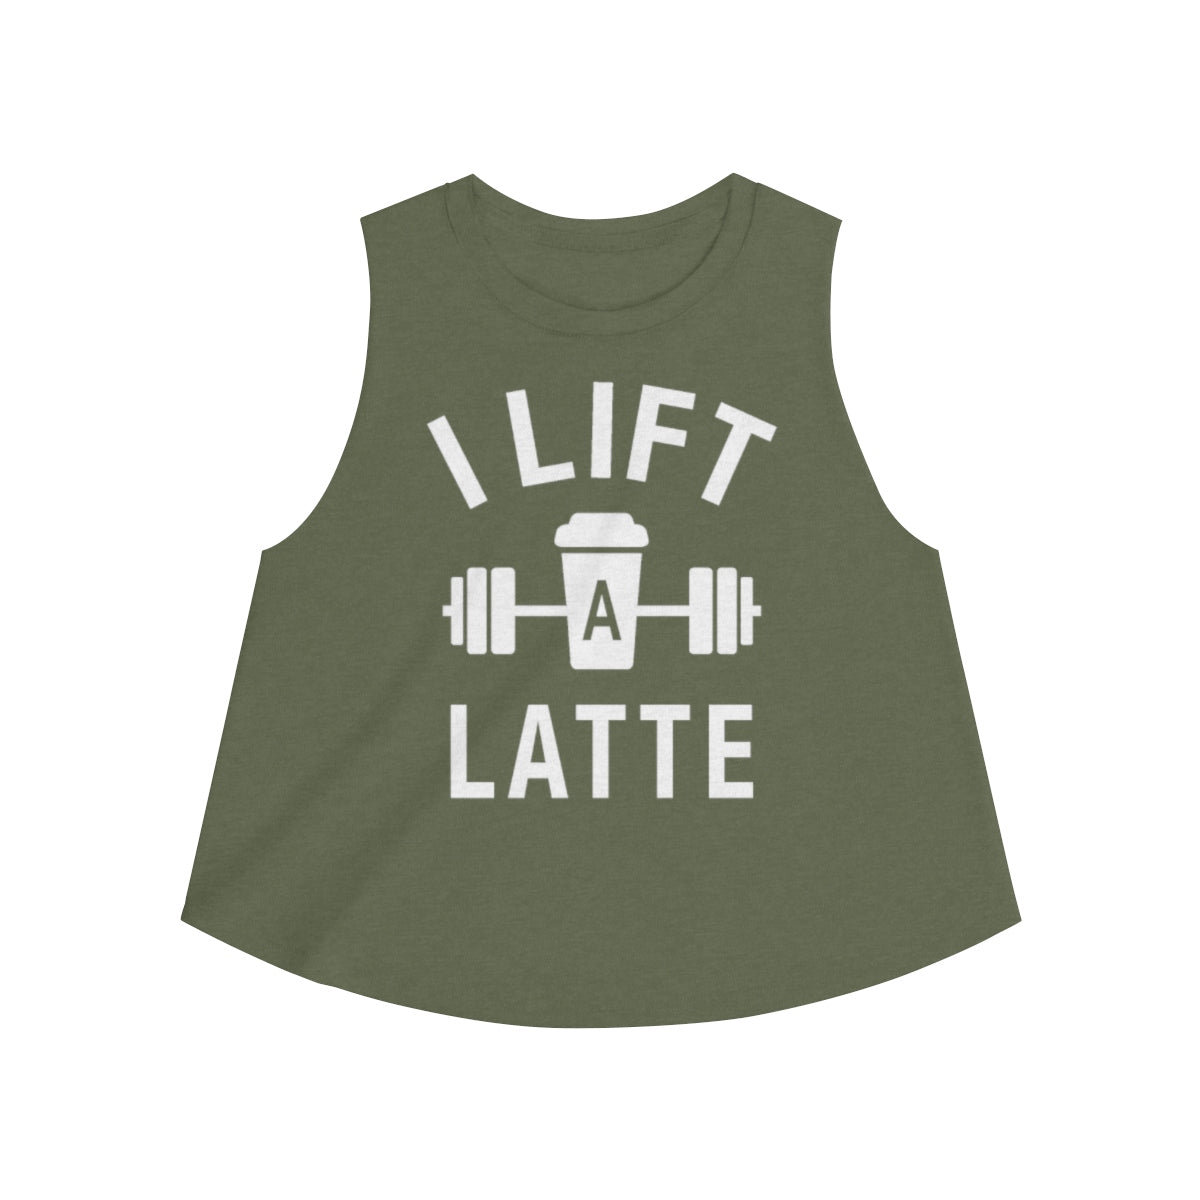 "I Lift A Latte Women's Crop top - Fit Family Apparel by Erick ""The Ab Pro"""